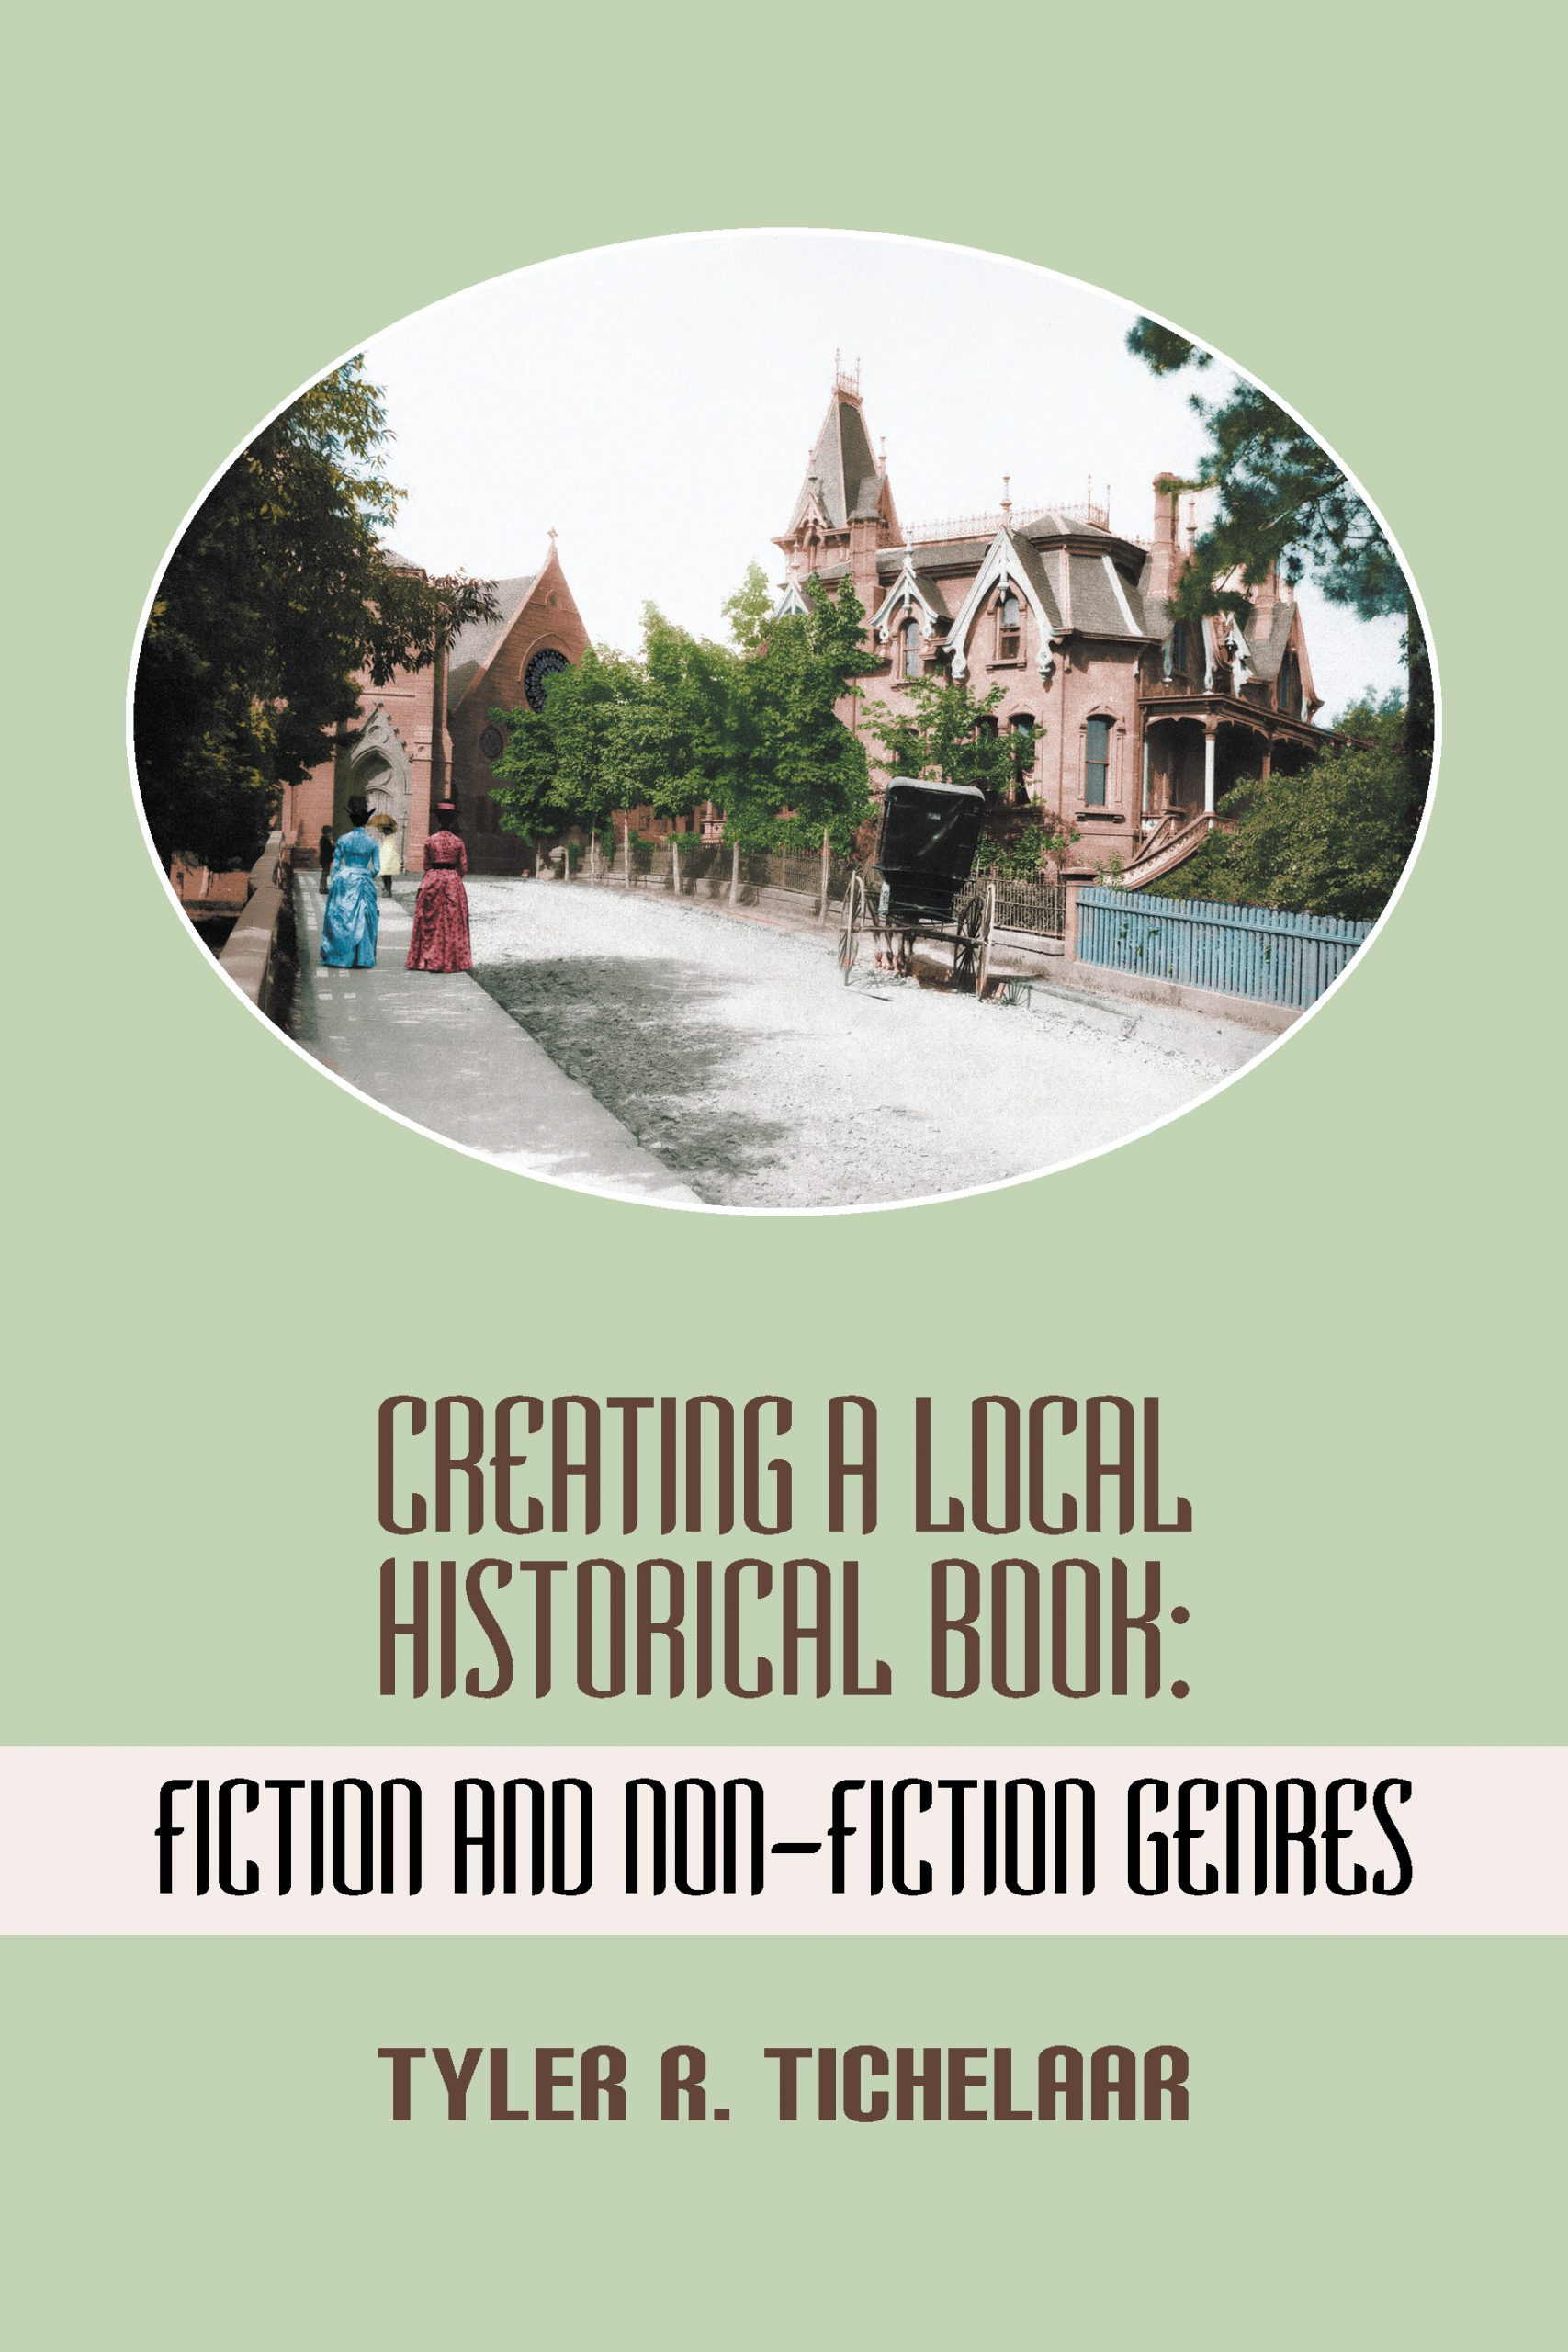 Creating a Local Historical Book: Fiction and Non-Fiction Genres Image